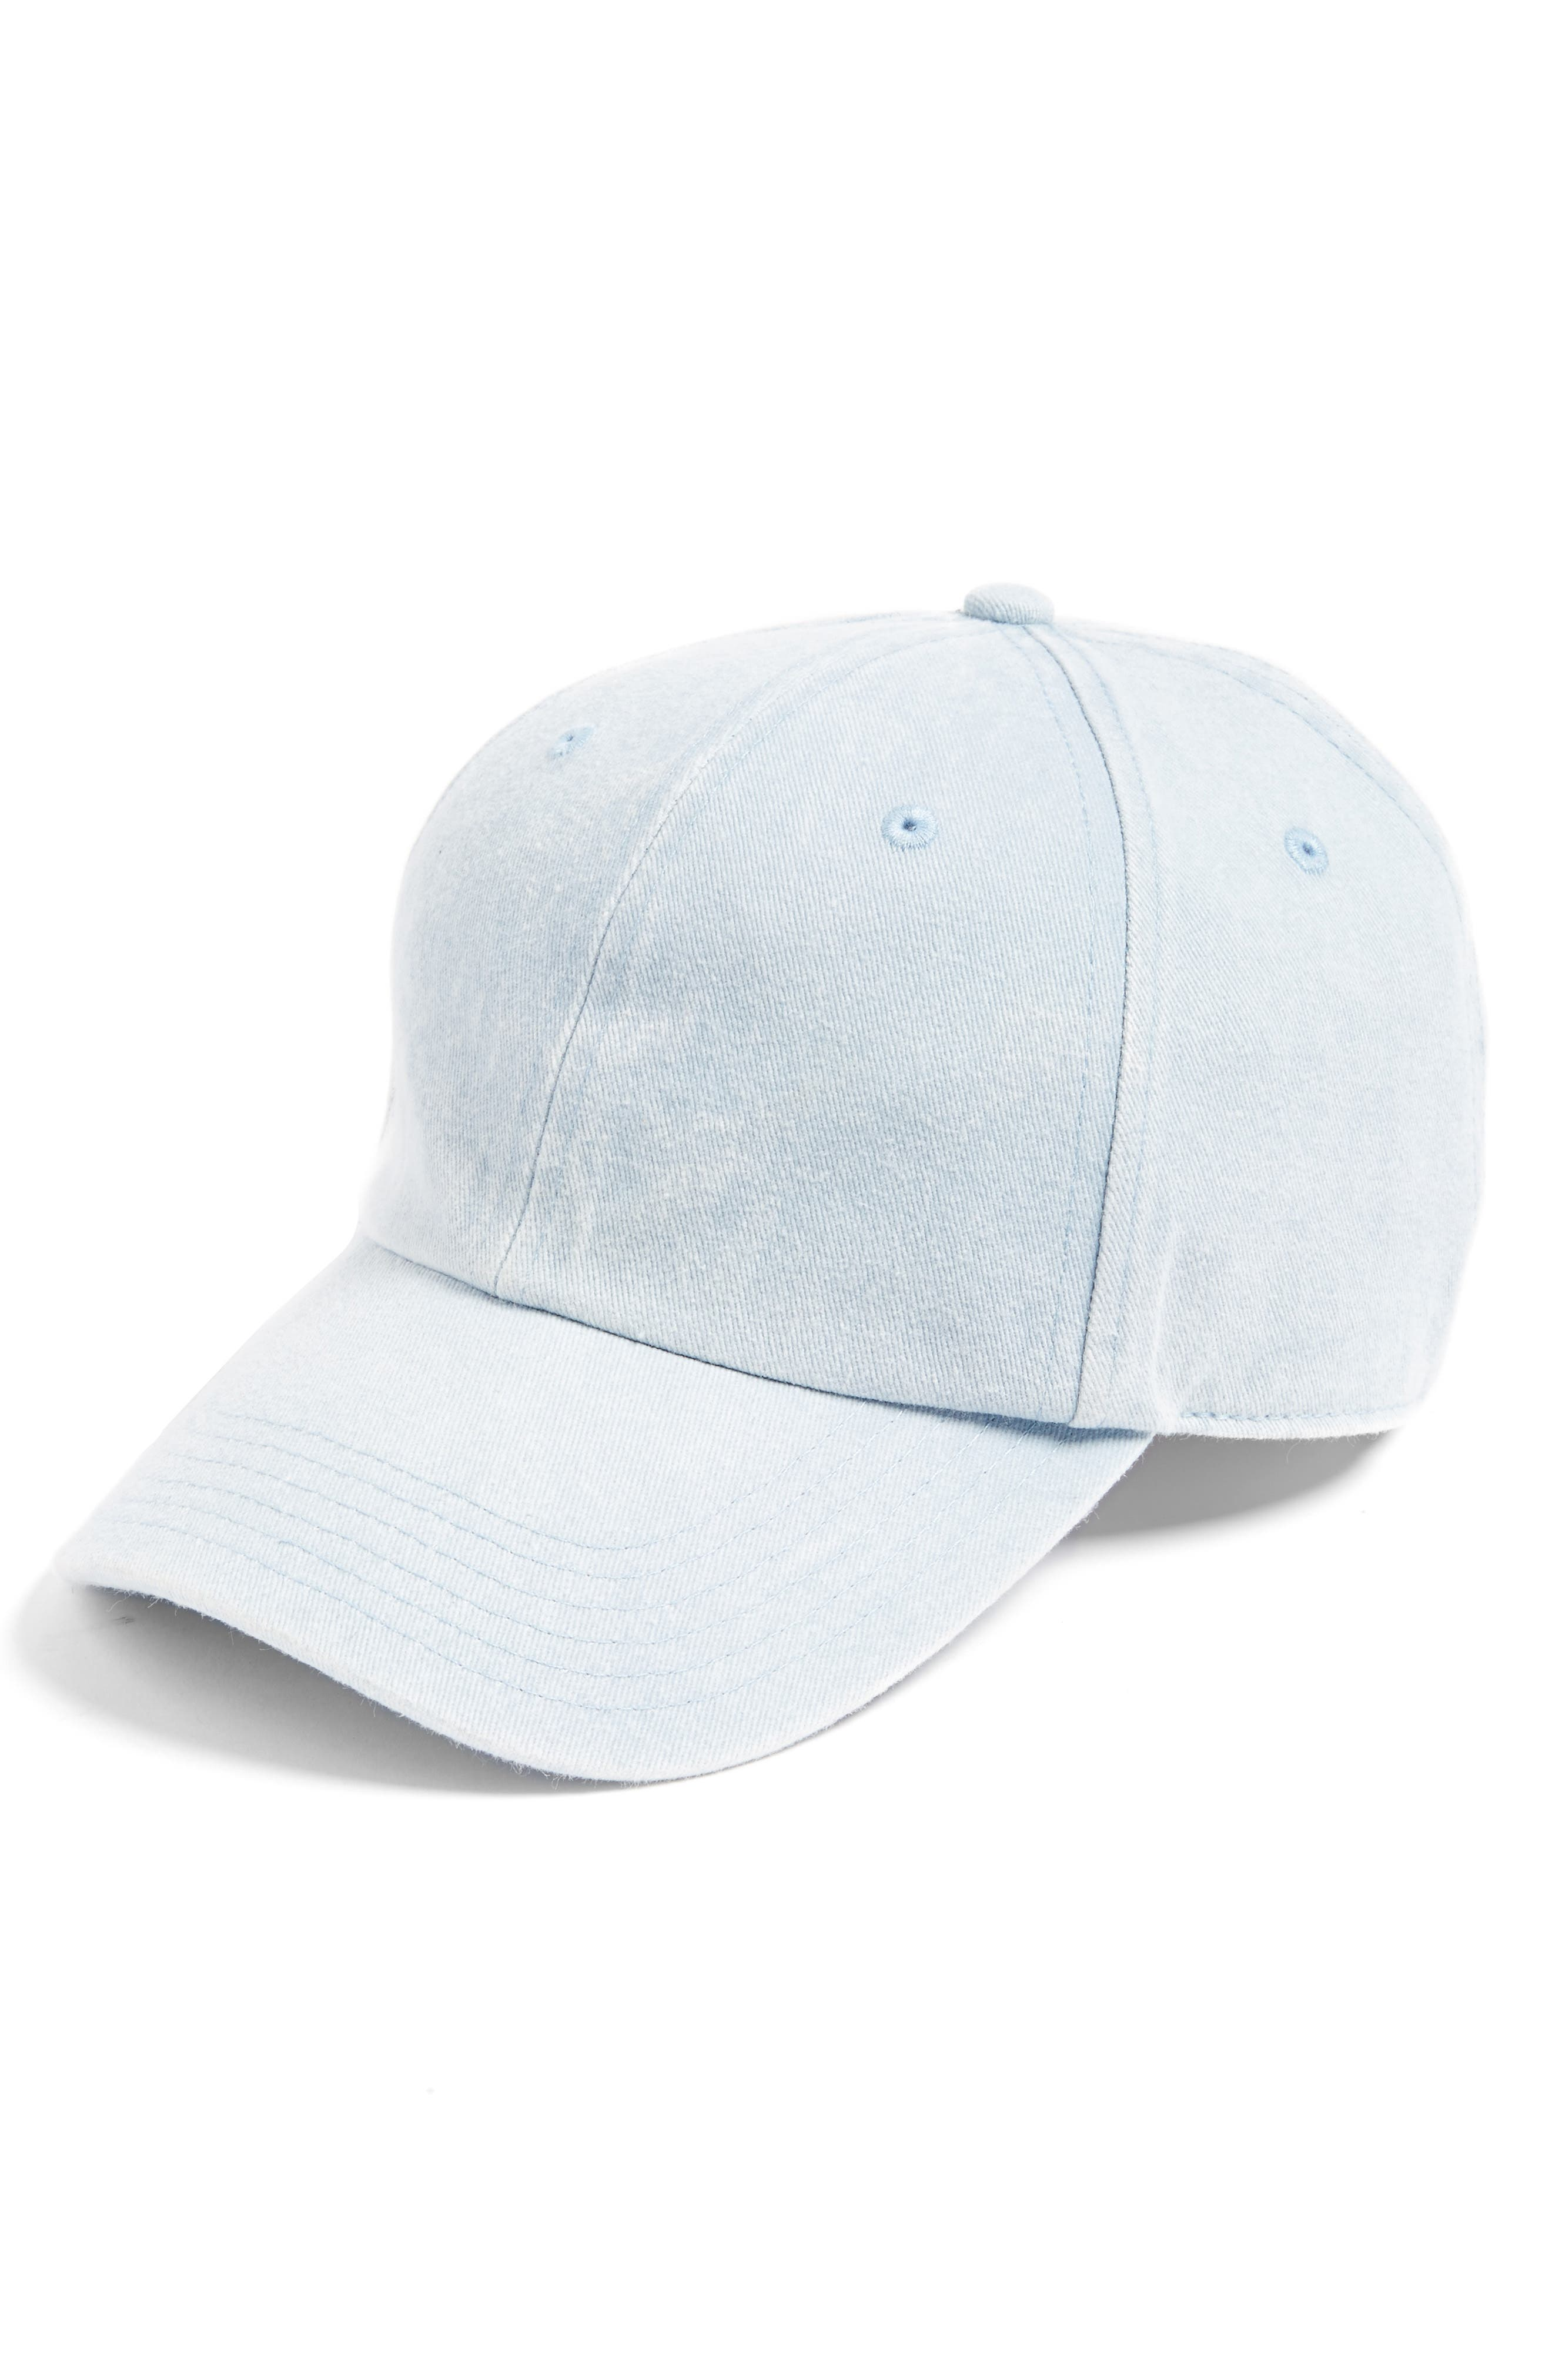 Canvas Baseball Cap,                         Main,                         color, CHAMBRAY WASHED